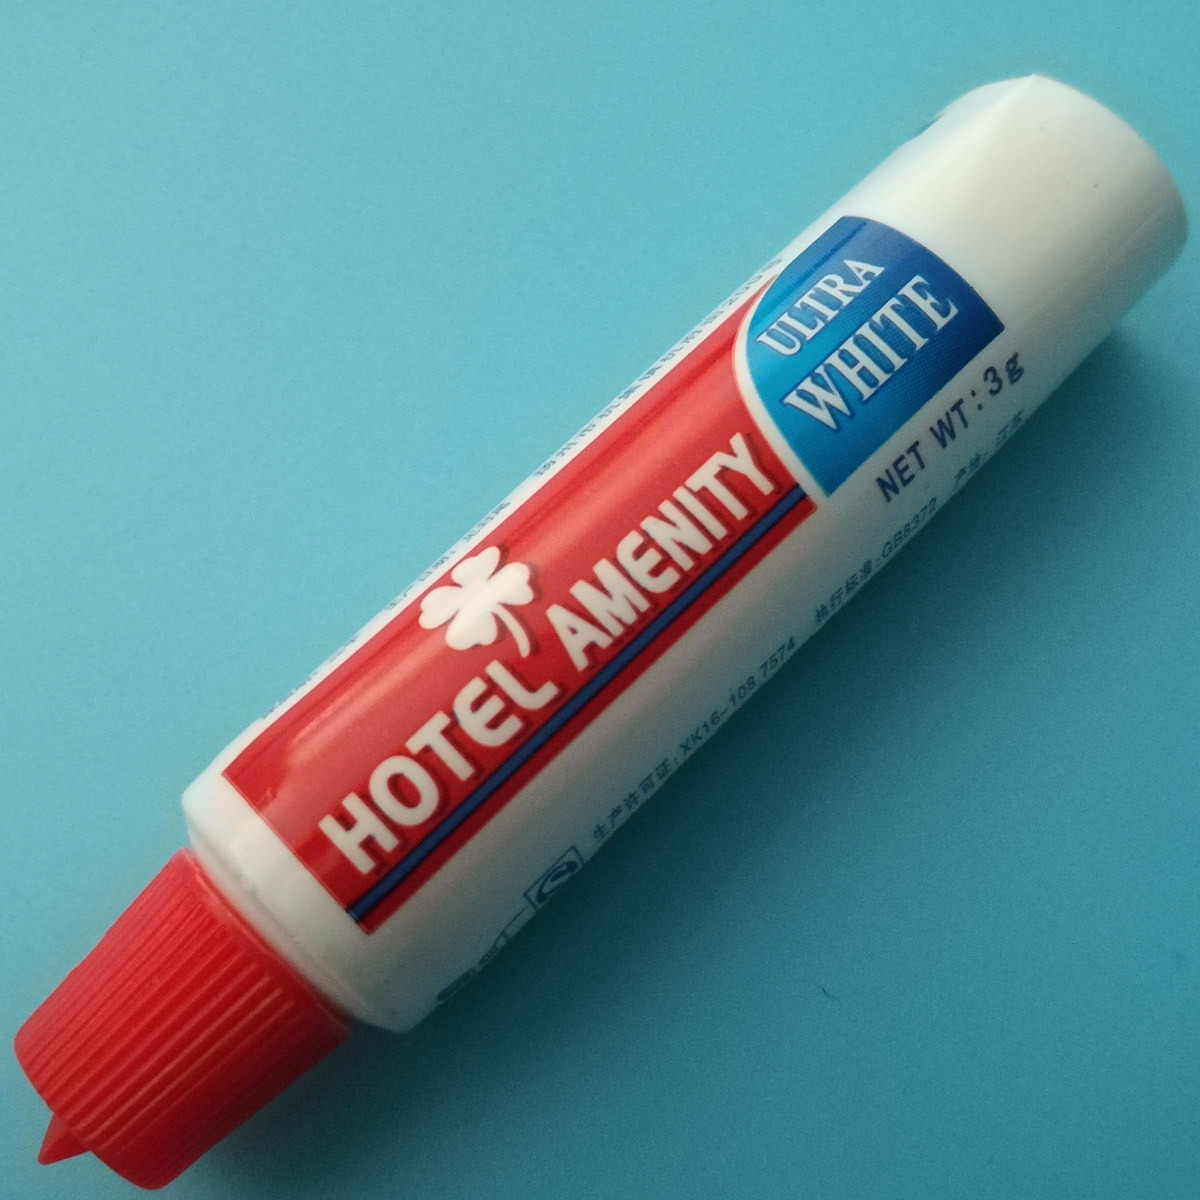 3G Toothpaste Tubes Cosmetic Tubes Aluminium&Plastic Packaging Tubes Abl Tubes Pbltubes Tourism Product Hotel Product